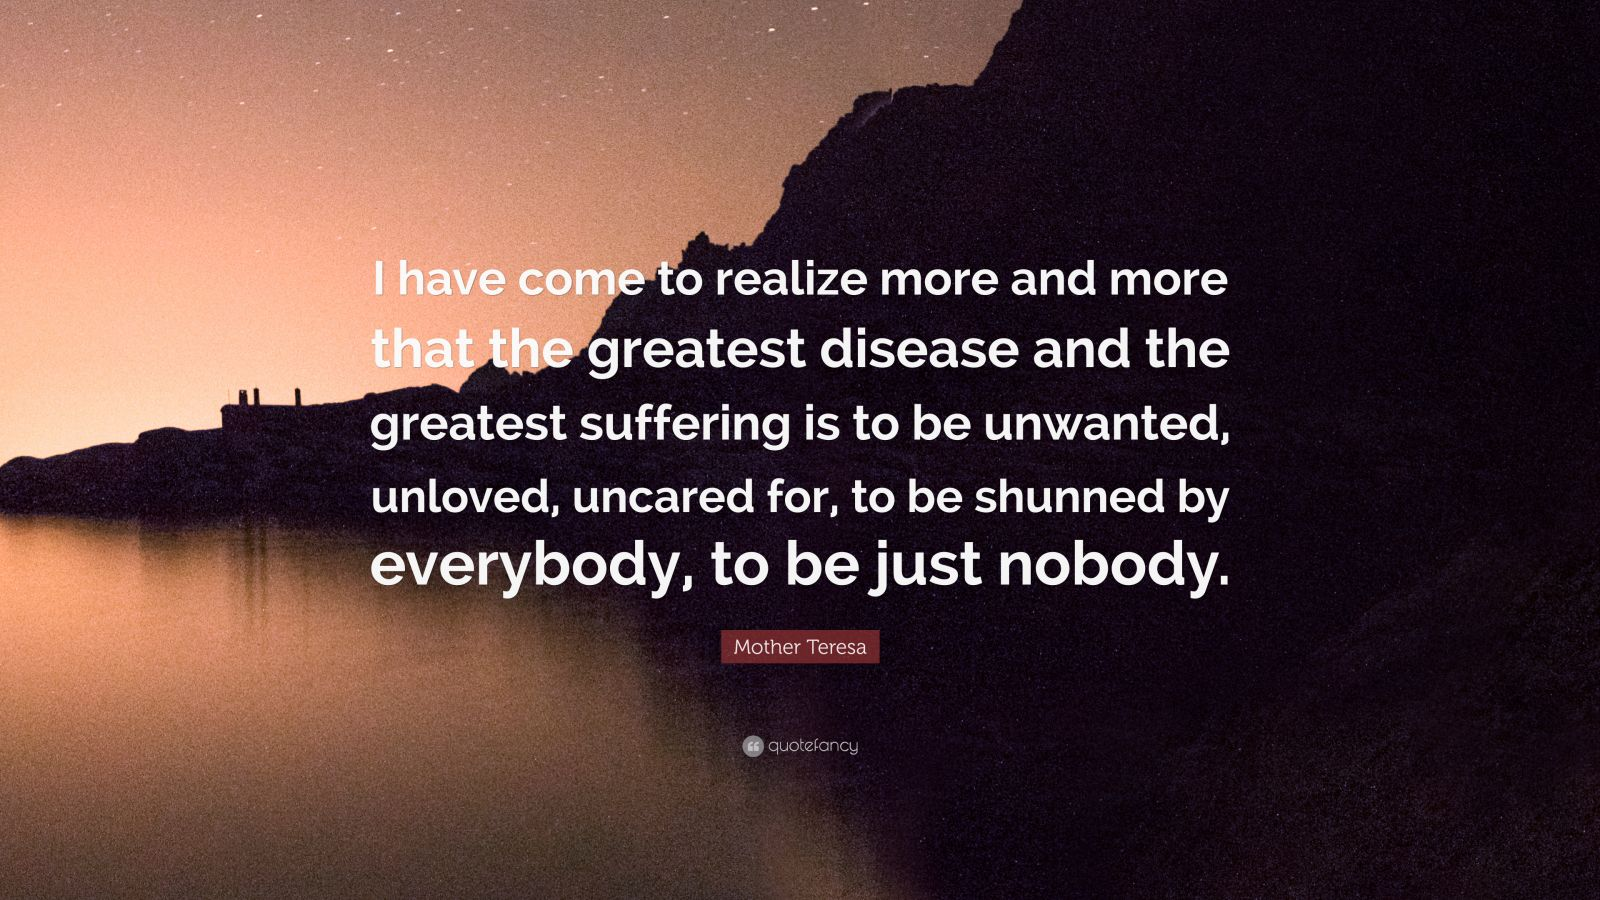 """Mother Teresa Quote: """"I have come to realize more and more that the greatest disease and the greatest suffering is to be unwanted, unloved, uncared for, to be shunned by everybody, to be just nobody."""""""